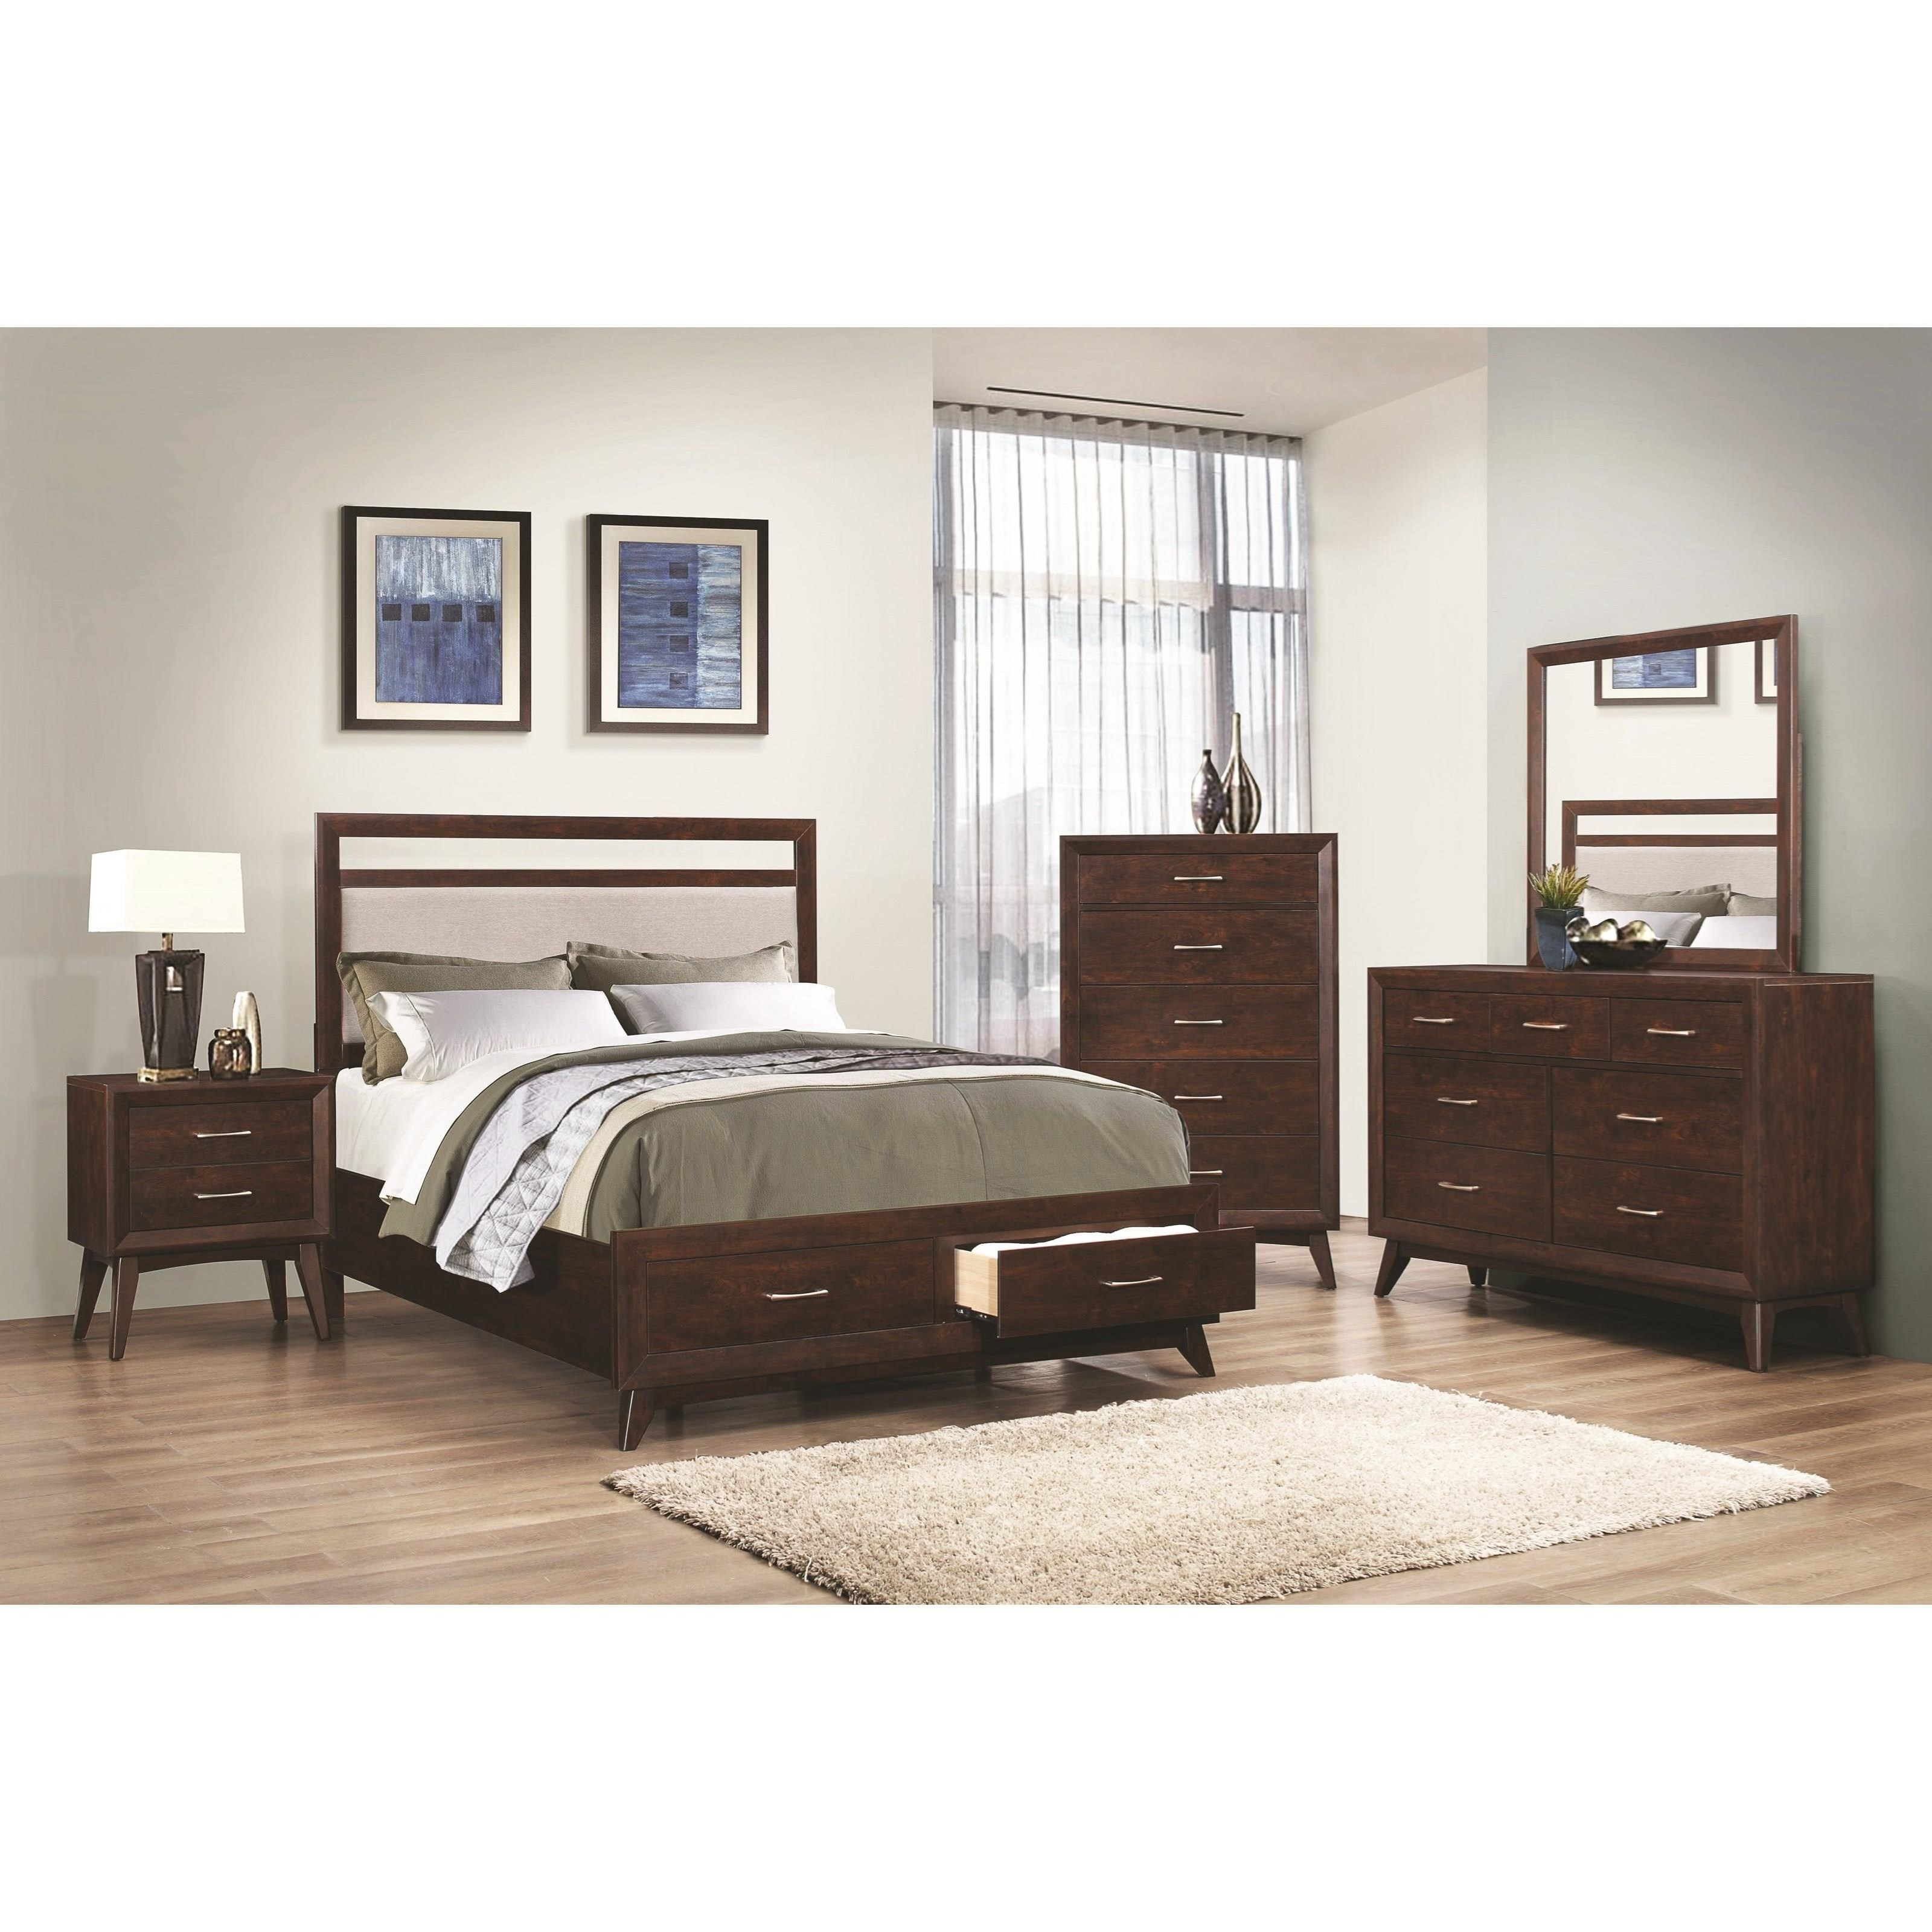 Carrington California King Storage Bed With Dovetail